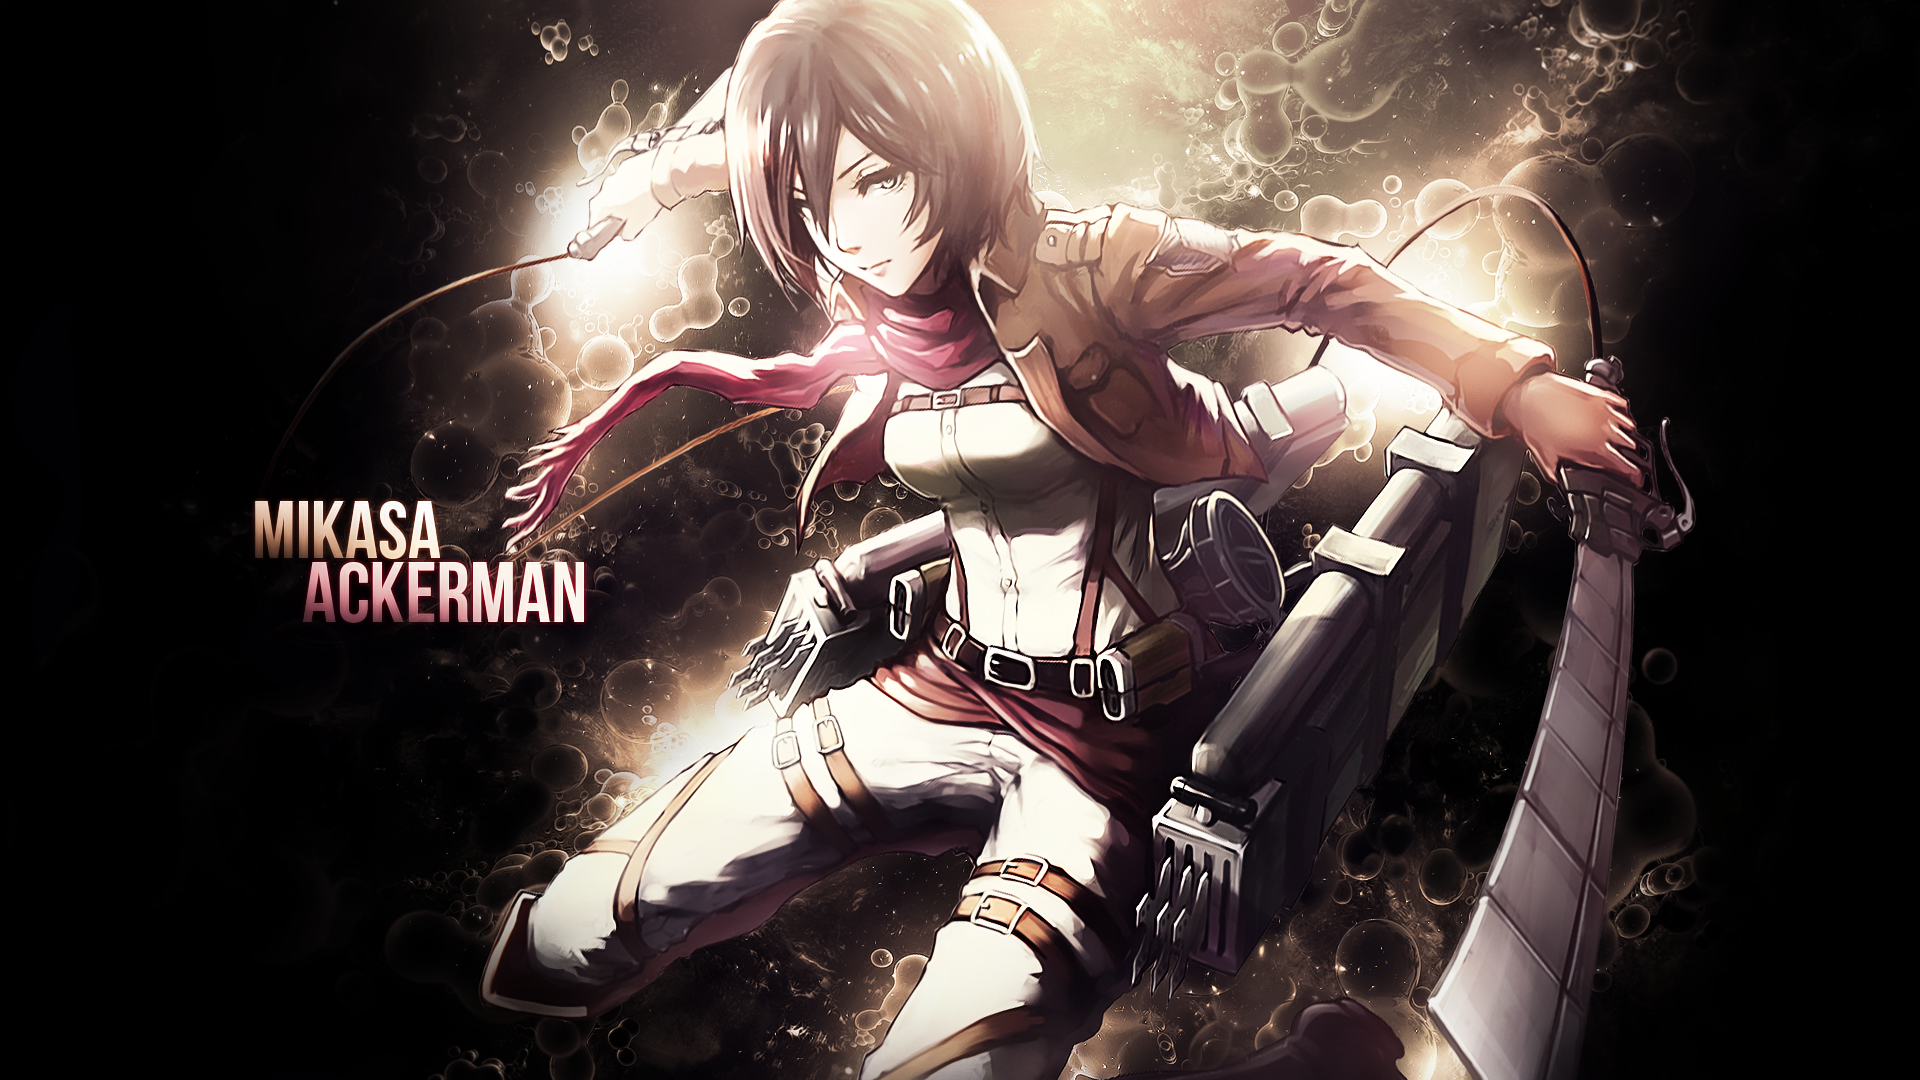 Mikasa ackerman full hd wallpaper and background image 1920x1080 anime attack on titan mikasa ackerman wallpaper voltagebd Images